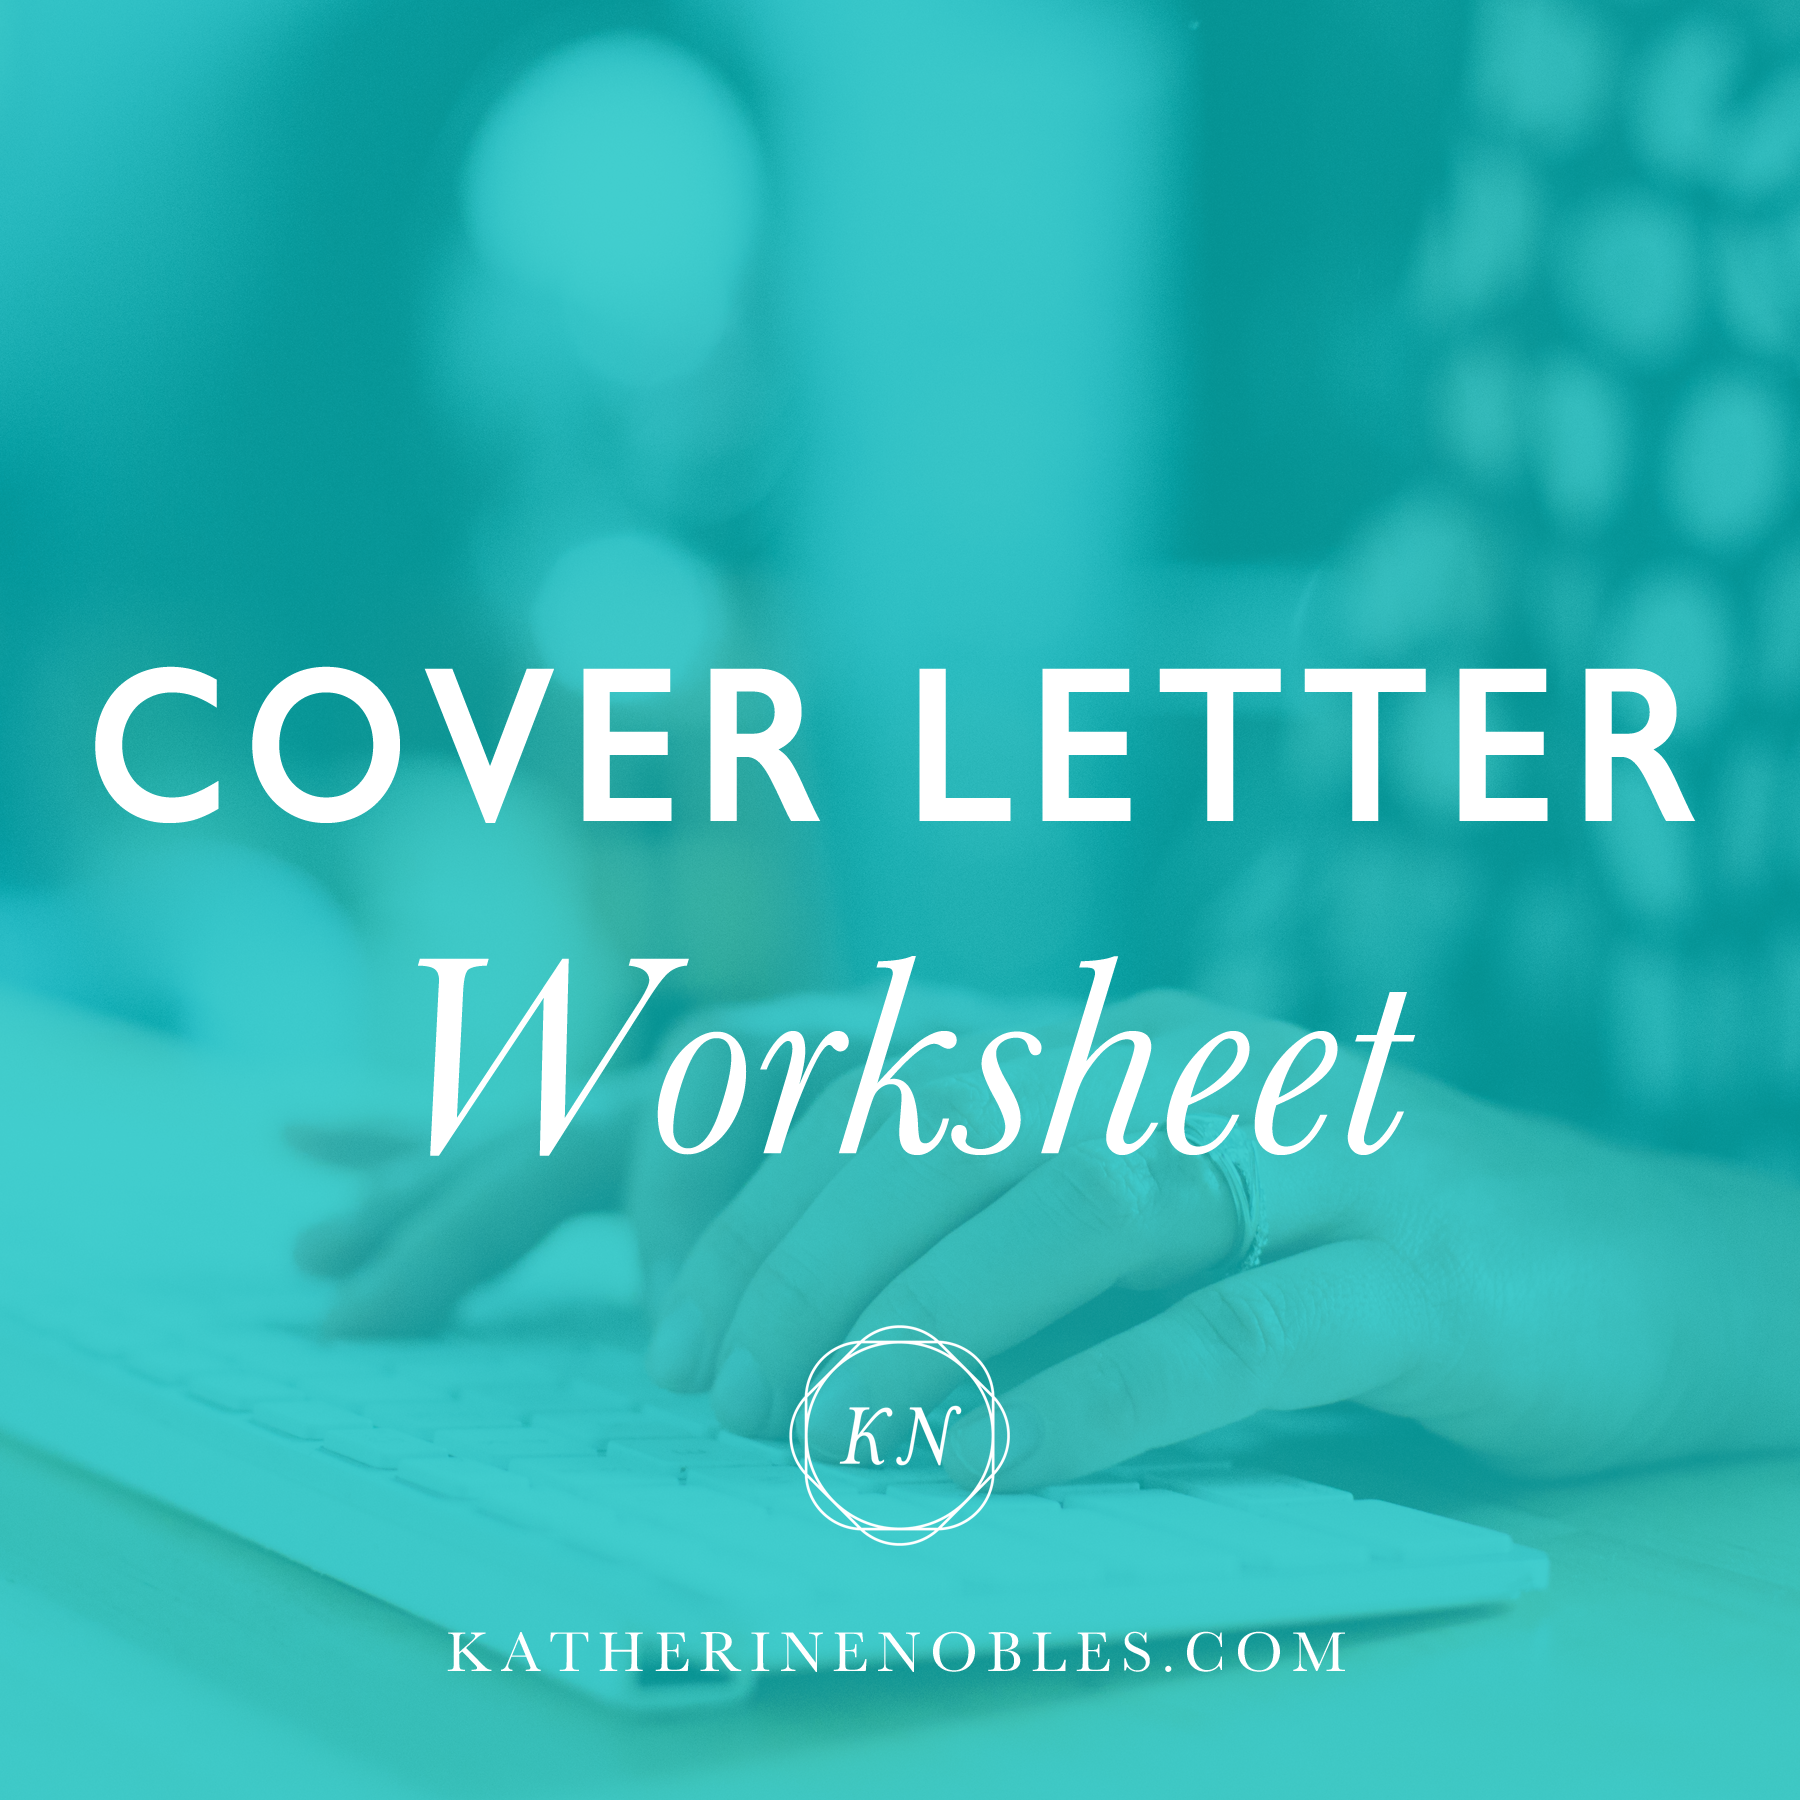 Cover Letter Worksheet